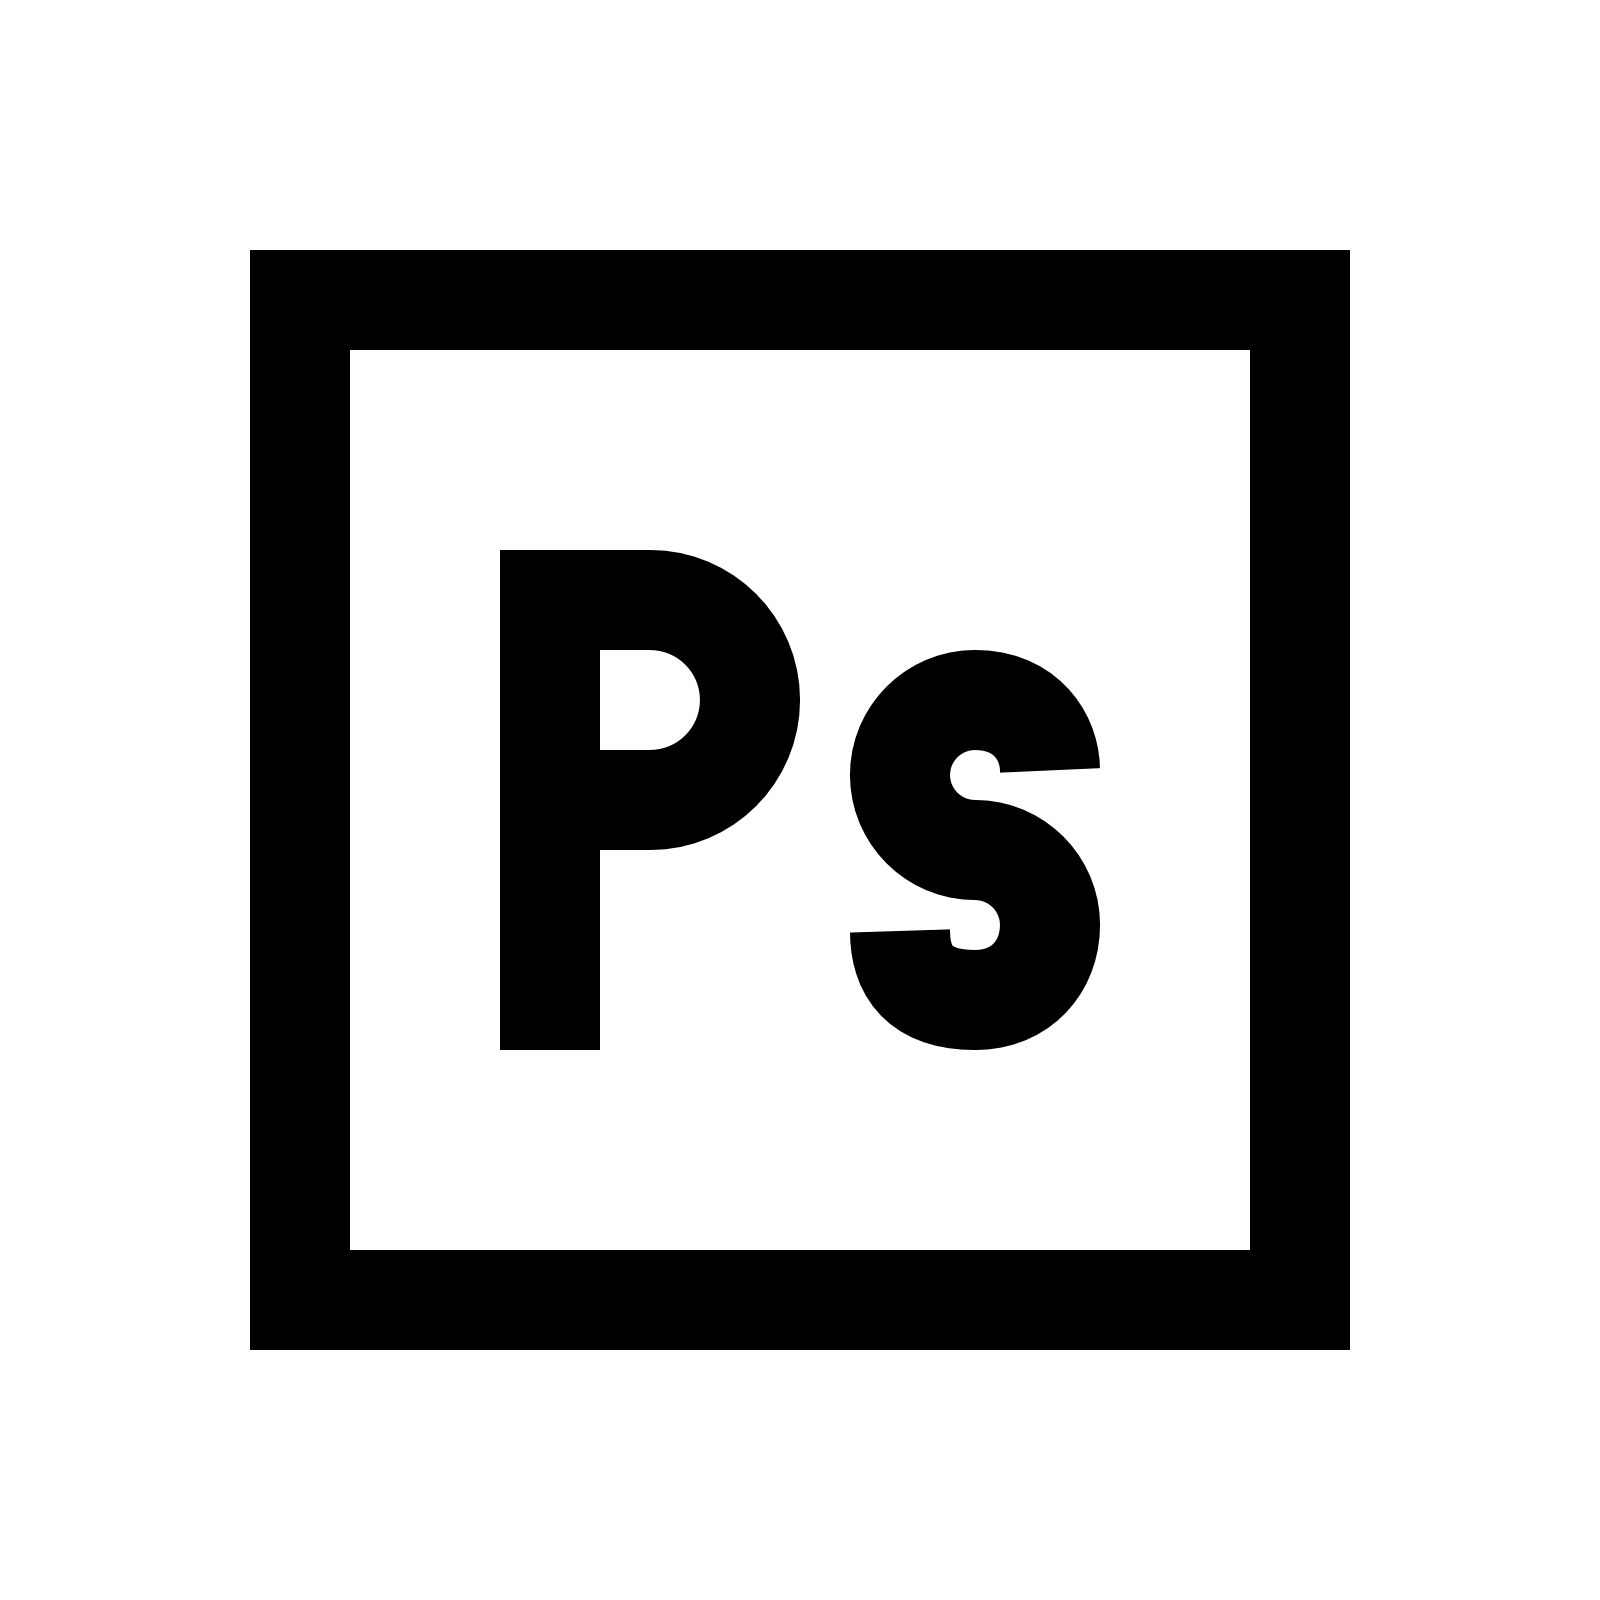 jpg free library Photoshop logo free on. Adobe clipart icon